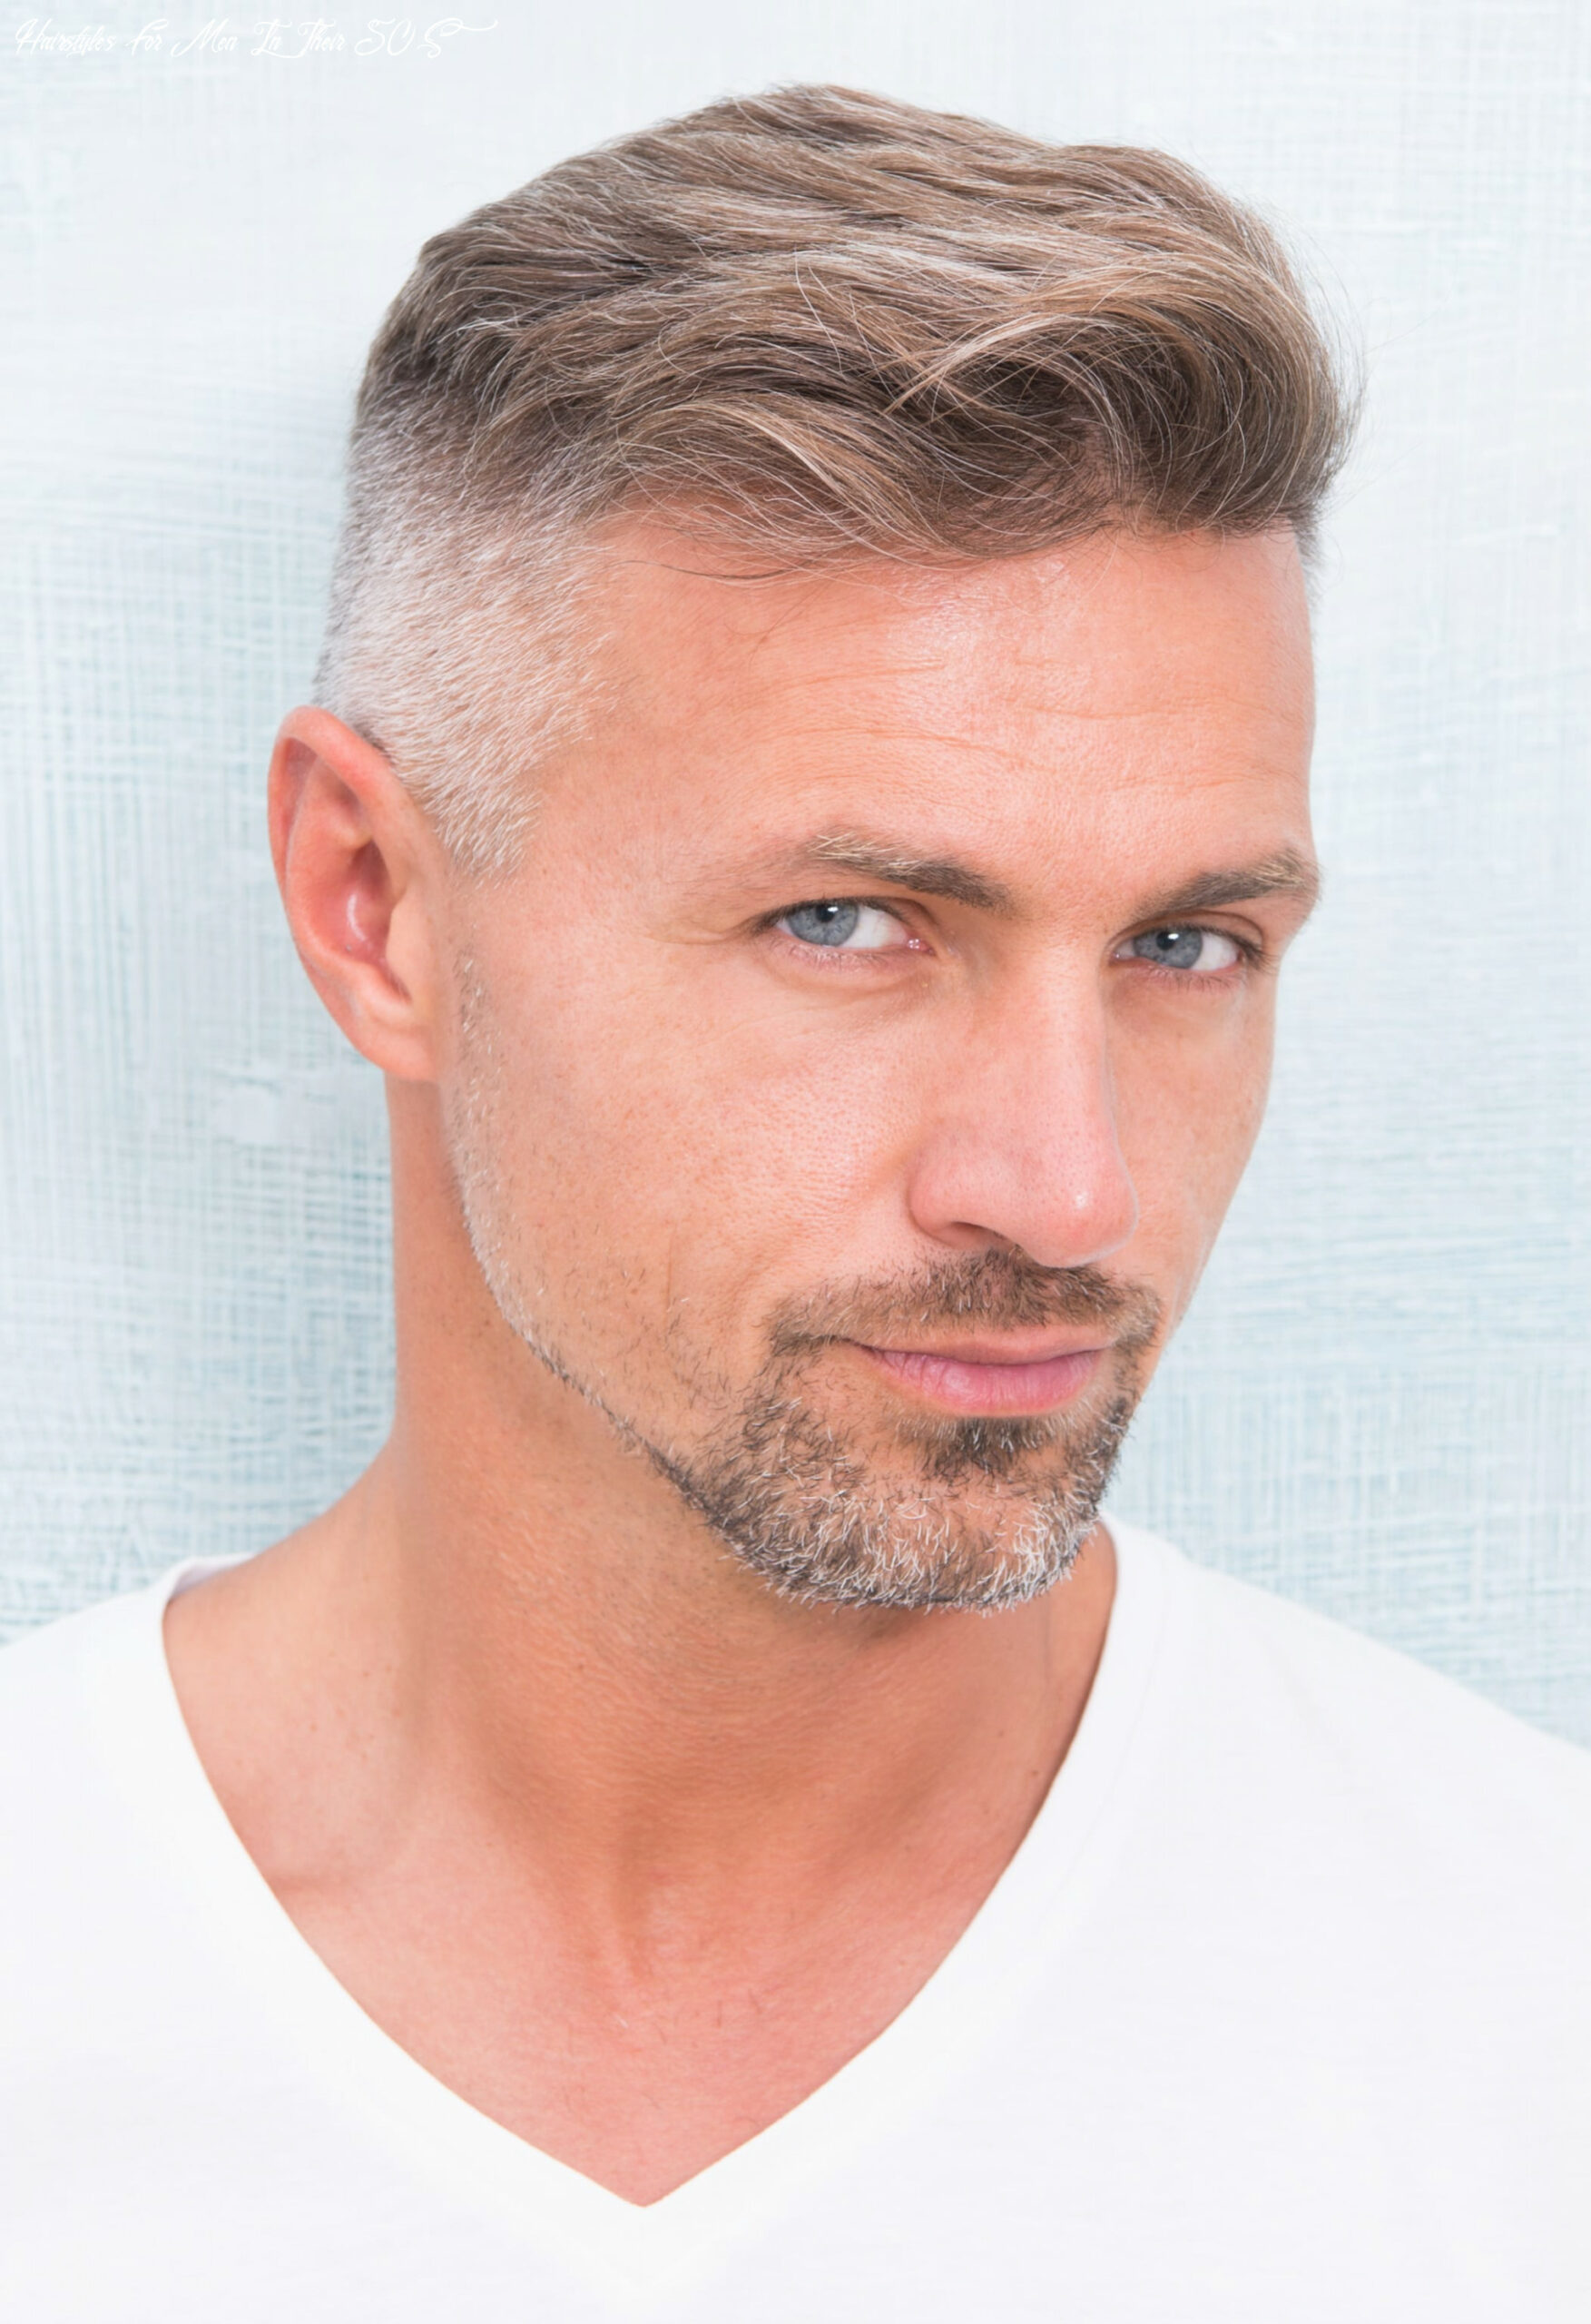 9 glorious hairstyles for men with grey hair (a k a